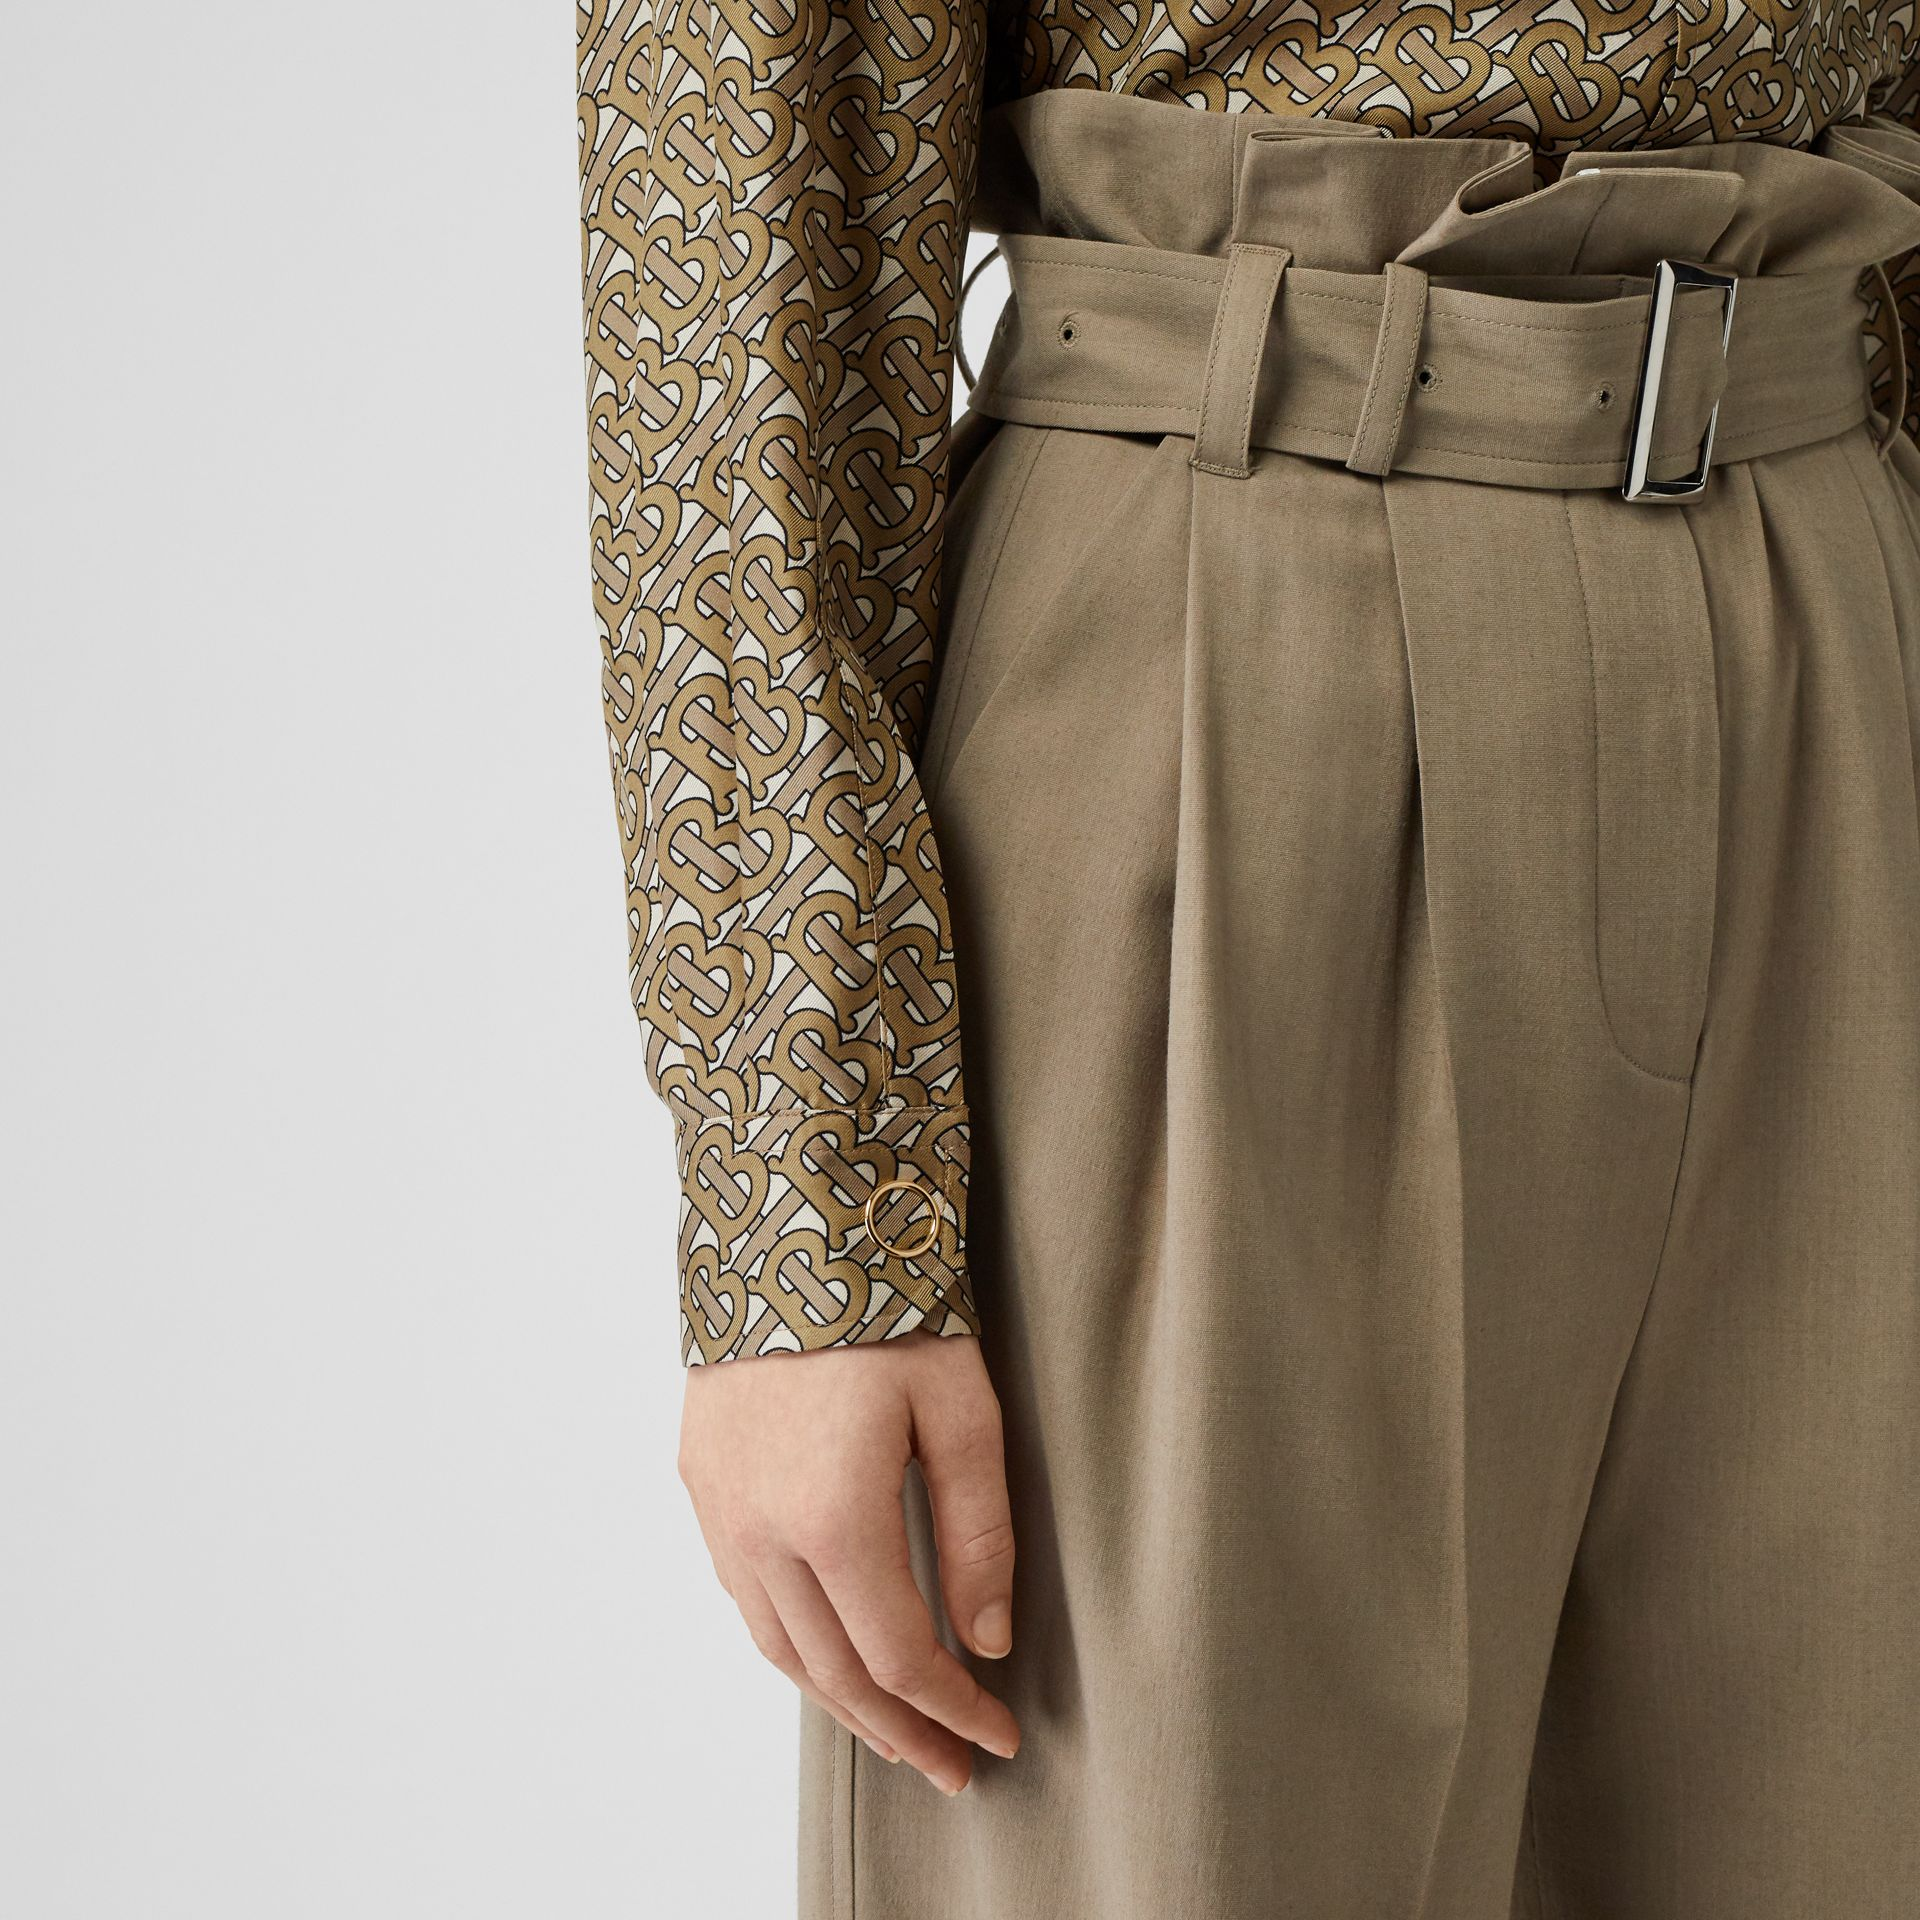 Contrast Collar Monogram Print Silk Shirt in Military Olive - Women | Burberry - gallery image 4